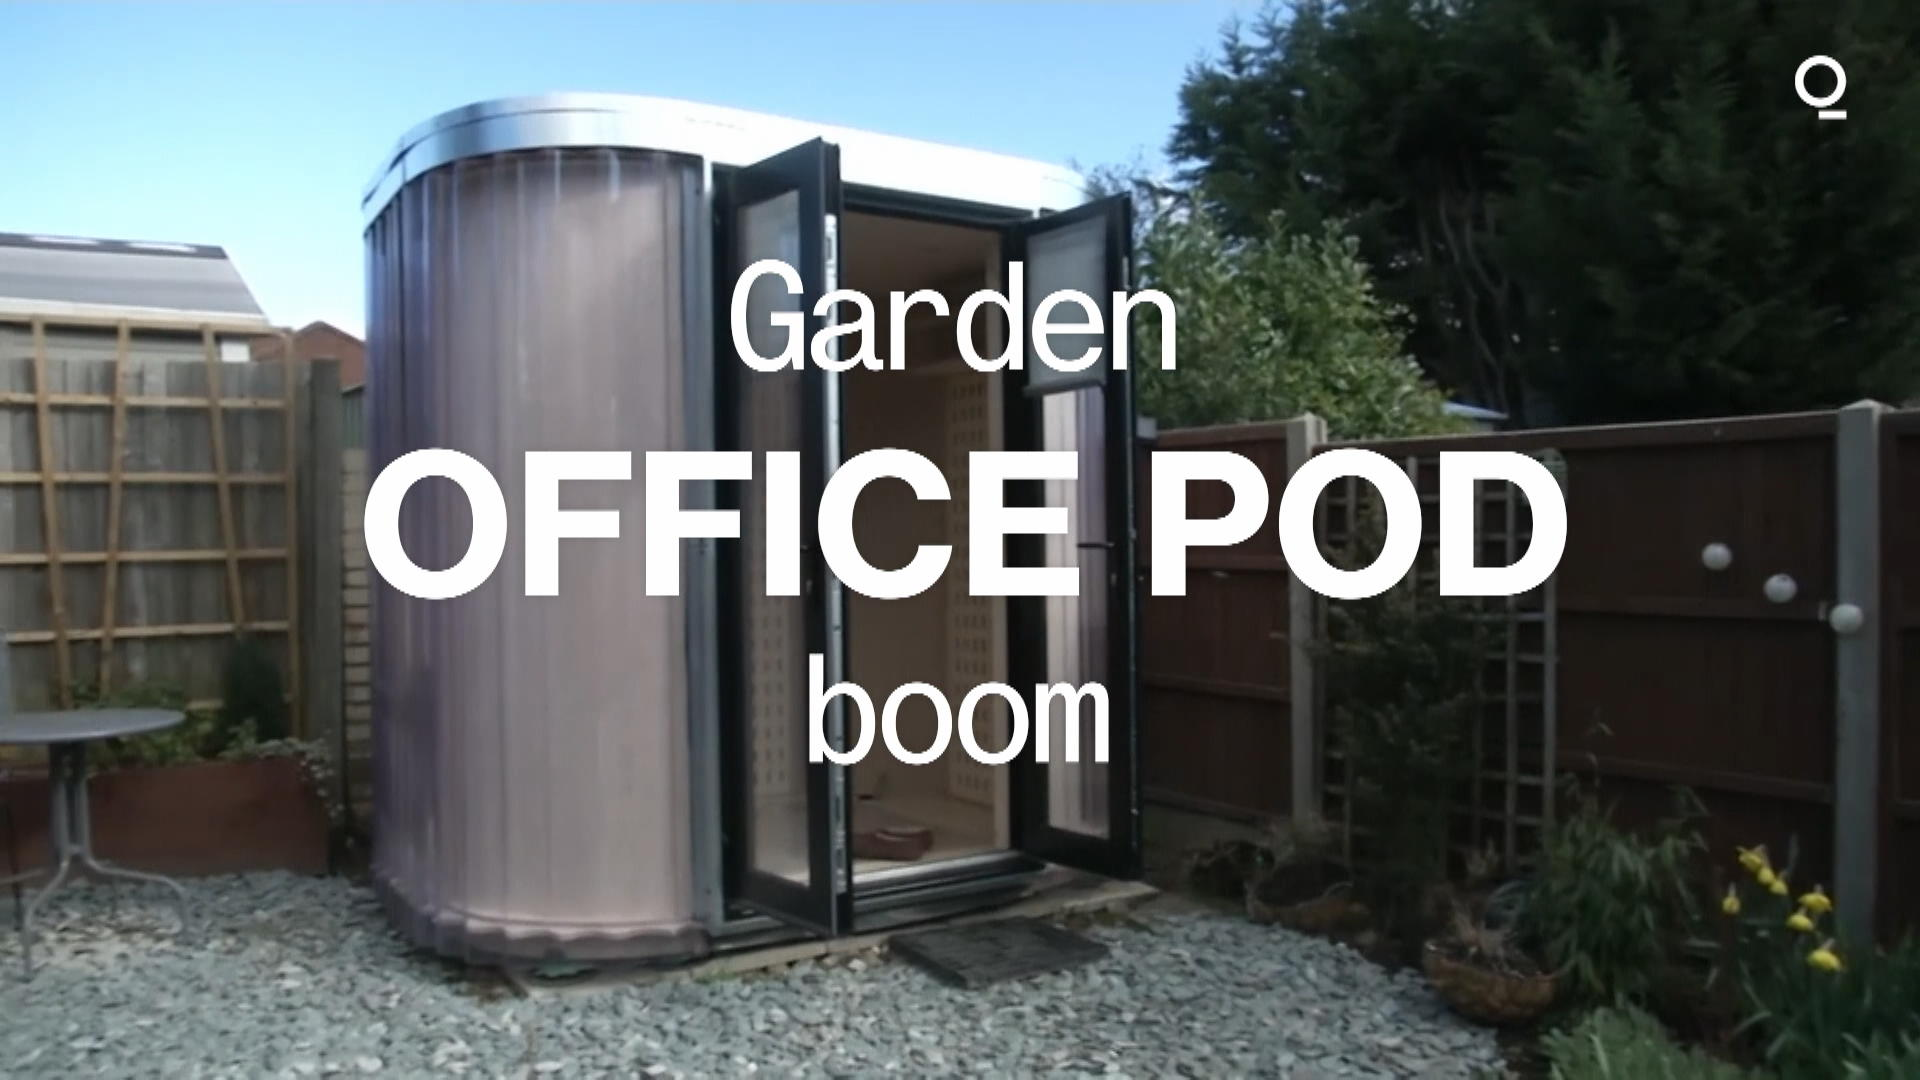 The Garden Office Pod Boom